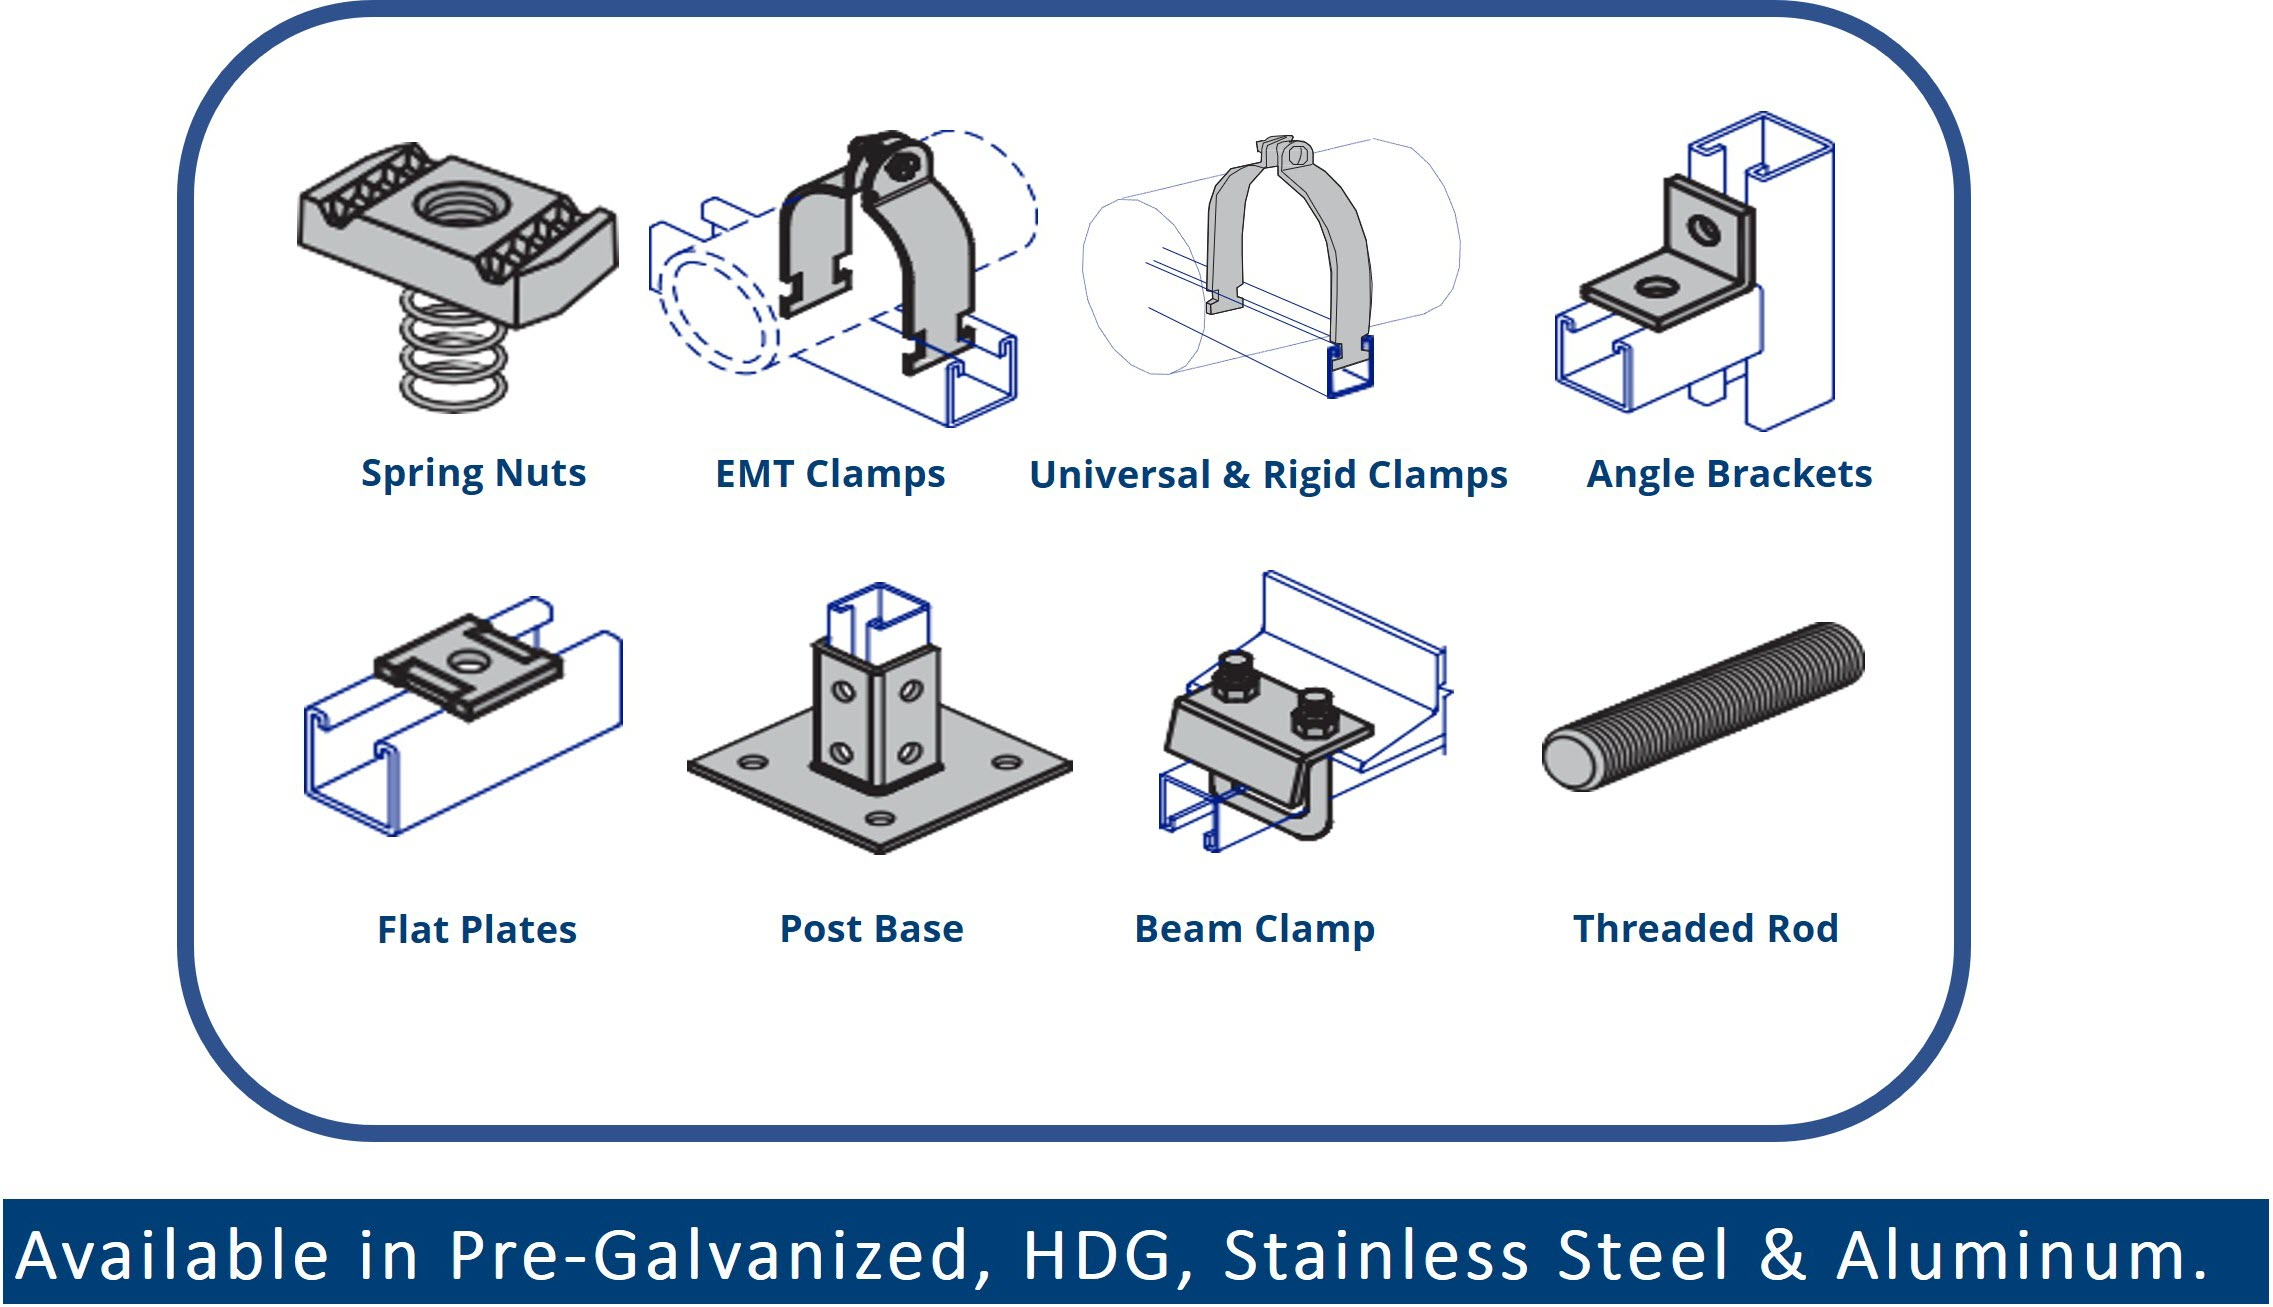 Full Line of Strut Accessories to Complete Any Job Application